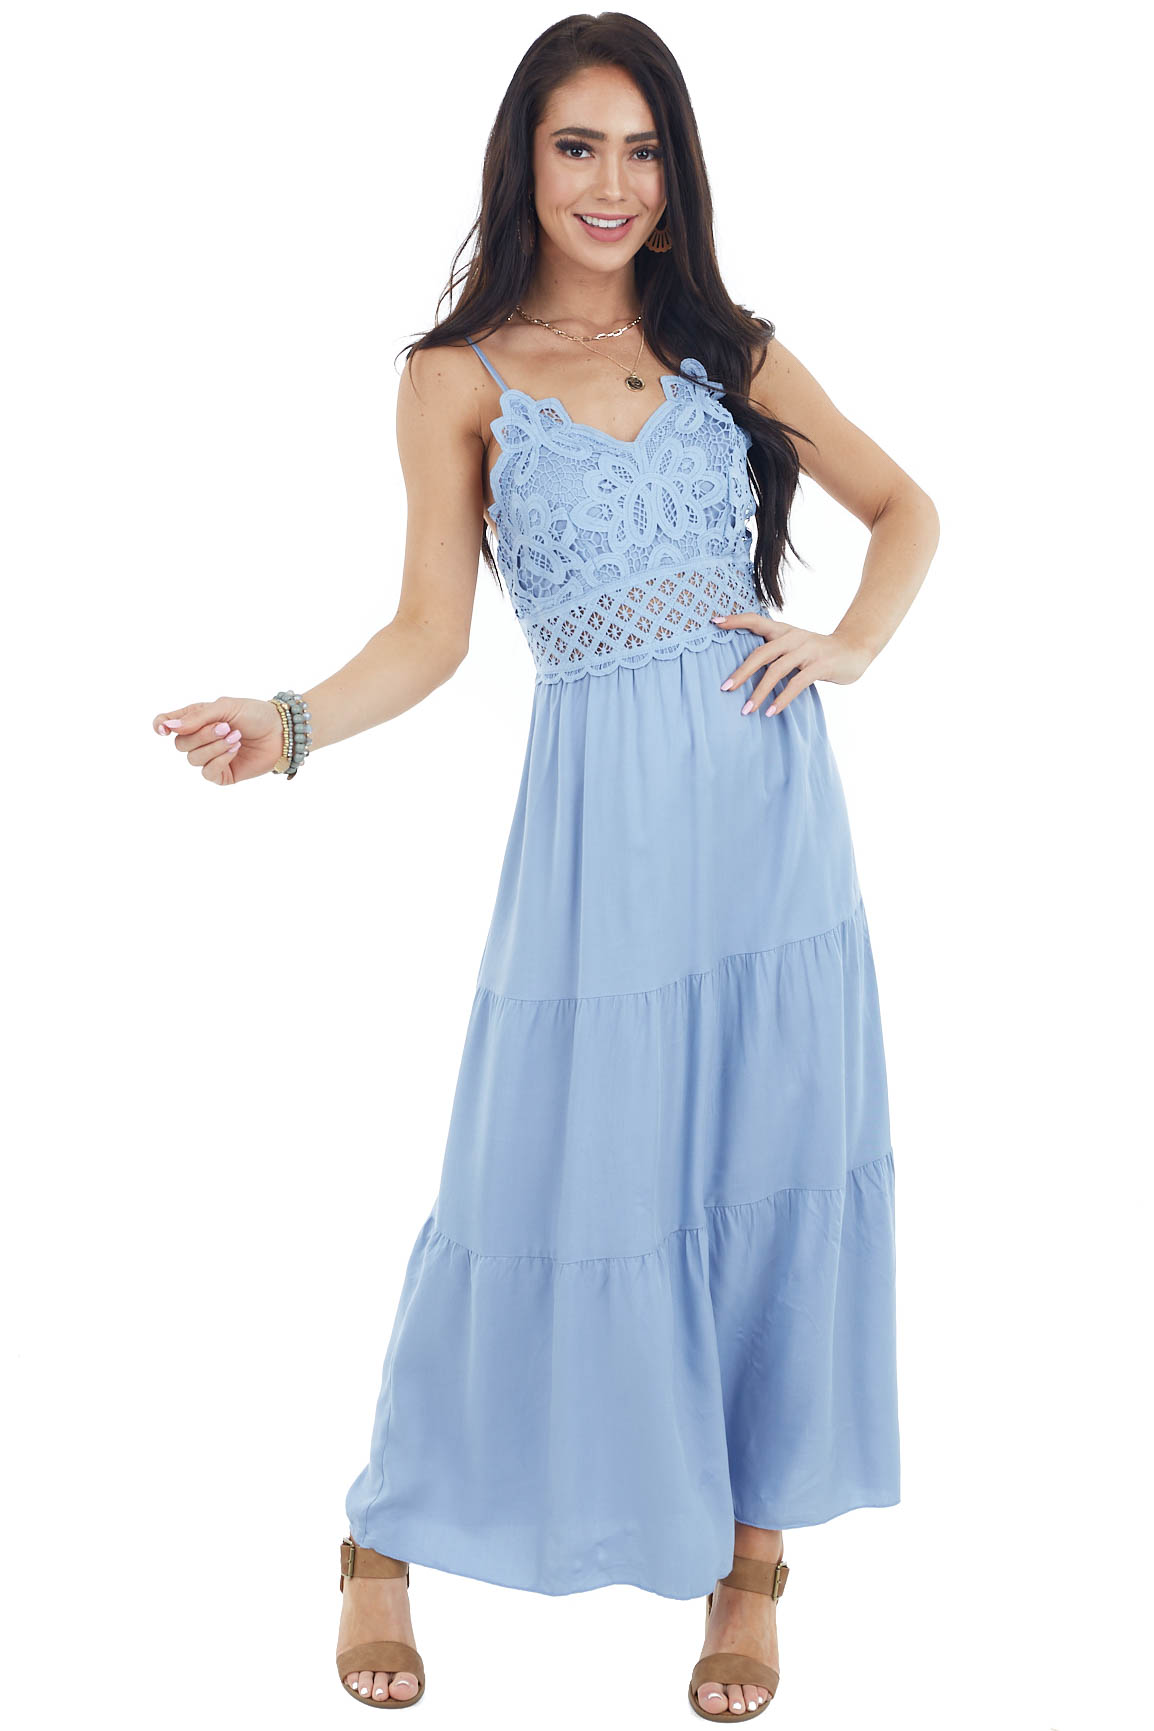 Dusty Blue Sleeveless Tiered Midi Dress with Lace Bodice